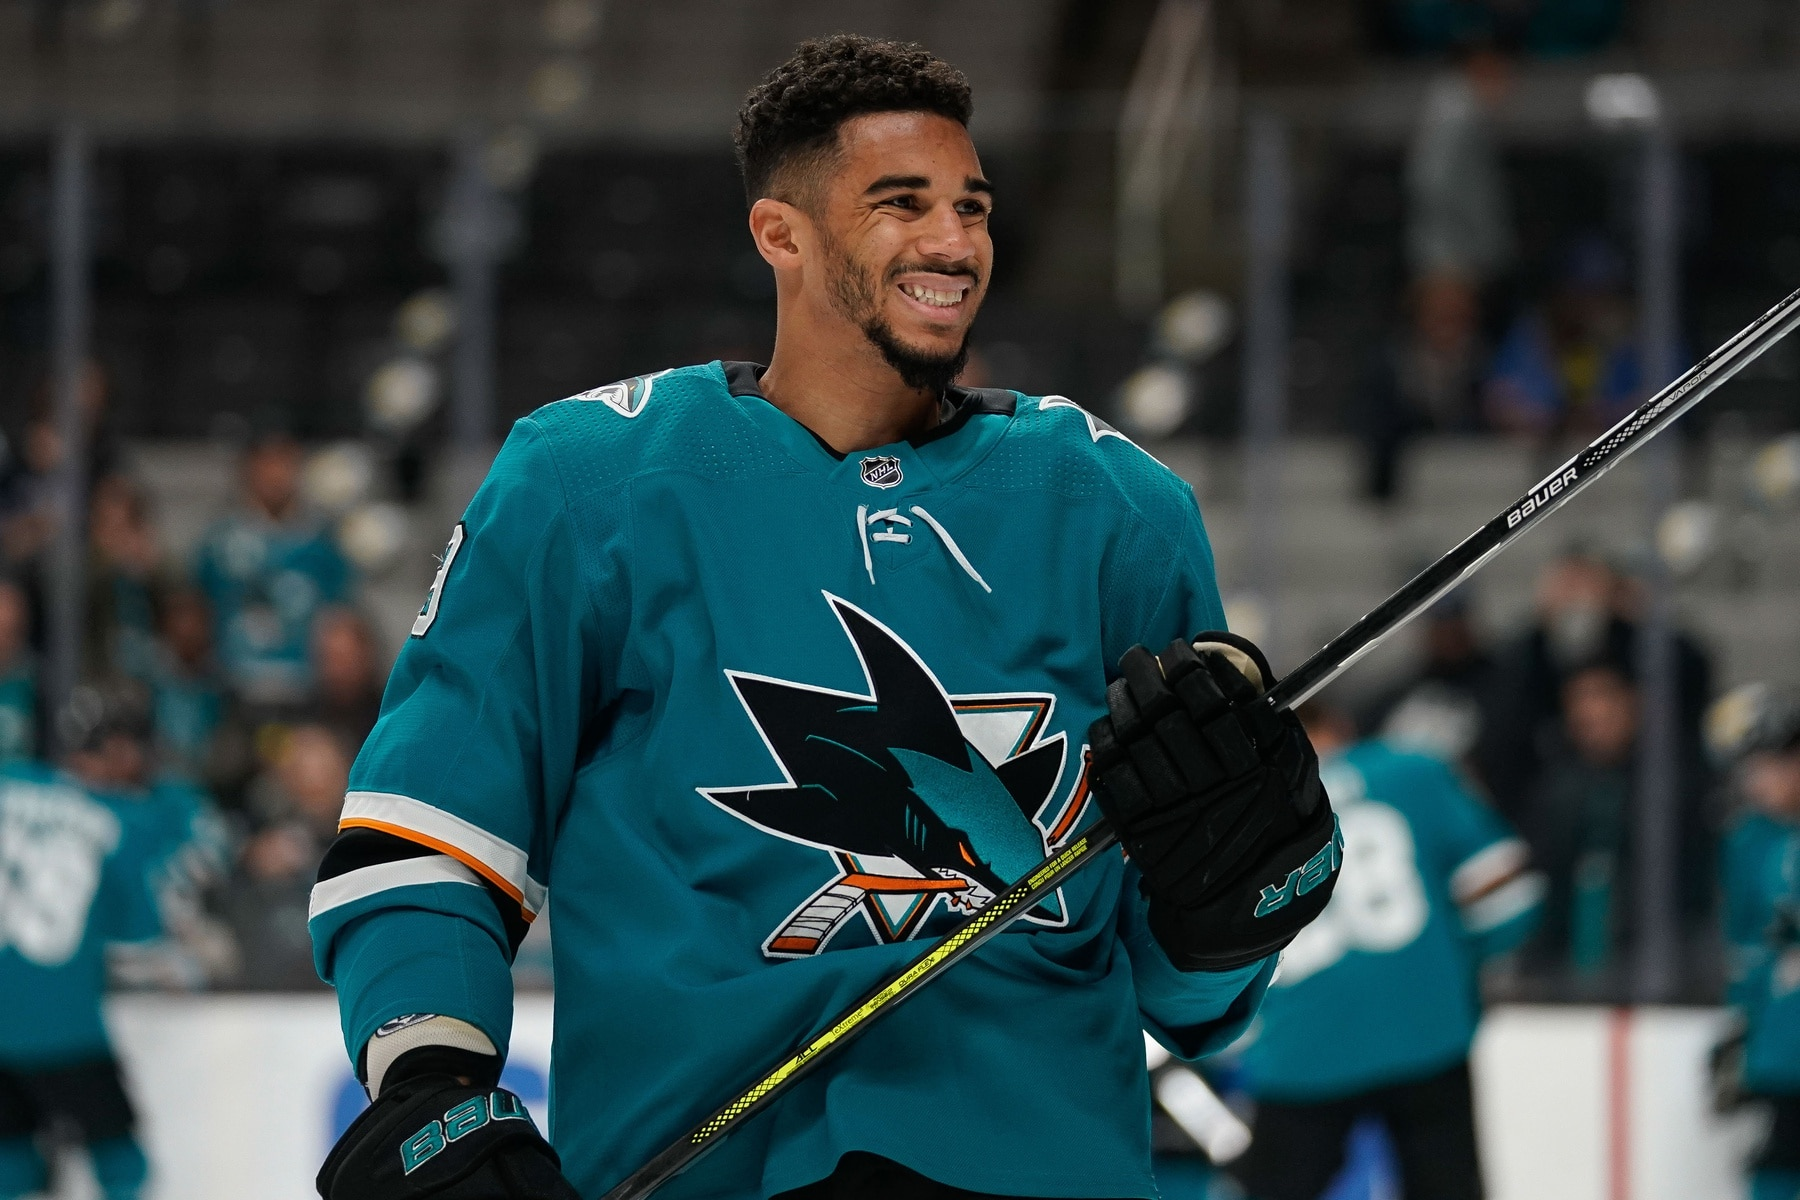 5 times the NHL's Evander Kane made headlines for controversial antics - Sportsnaut